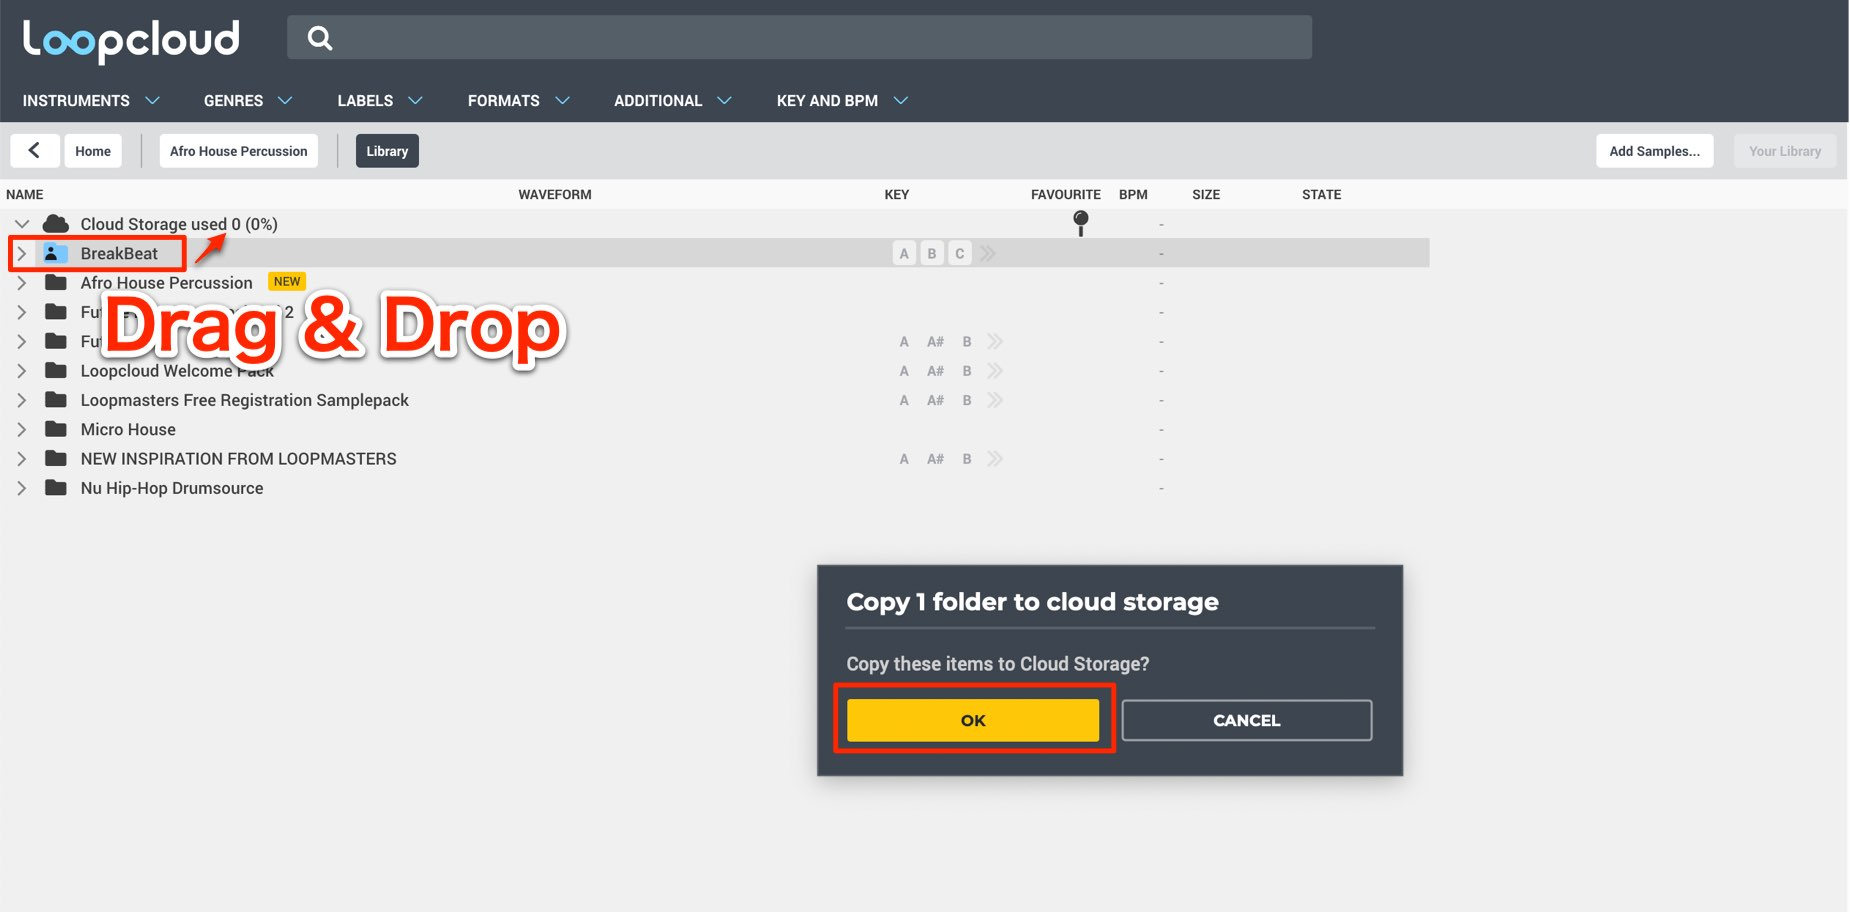 Copy 1 folder to cloud storage